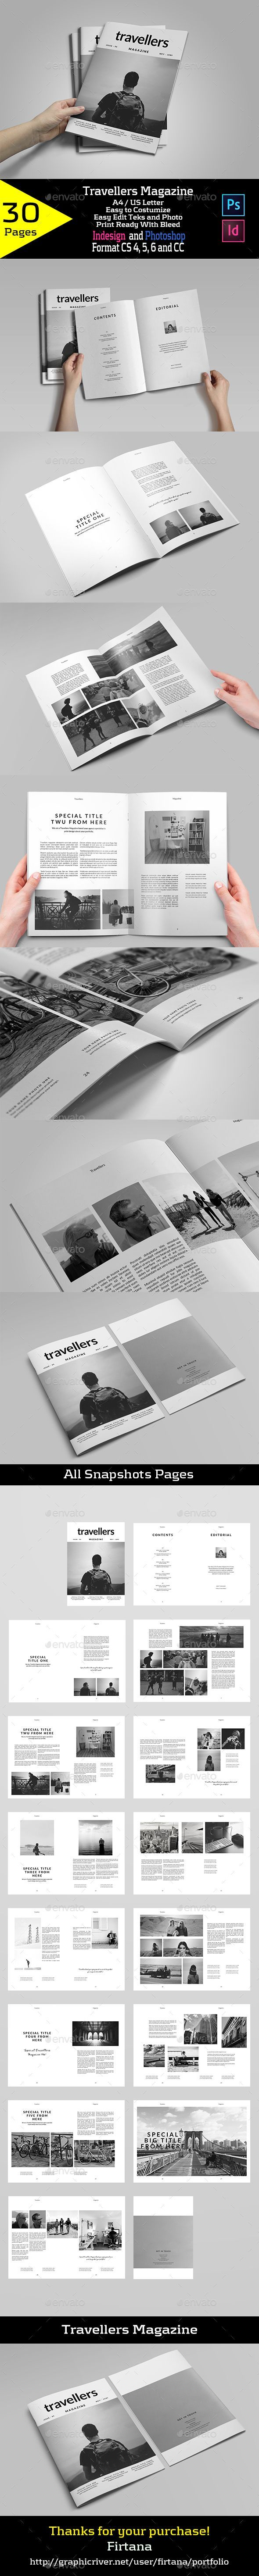 Travellers Magazine — Photoshop PSD #photography magazine #photo album • Available here → https://graphicriver.net/item/travellers-magazine/19953690?ref=pxcr